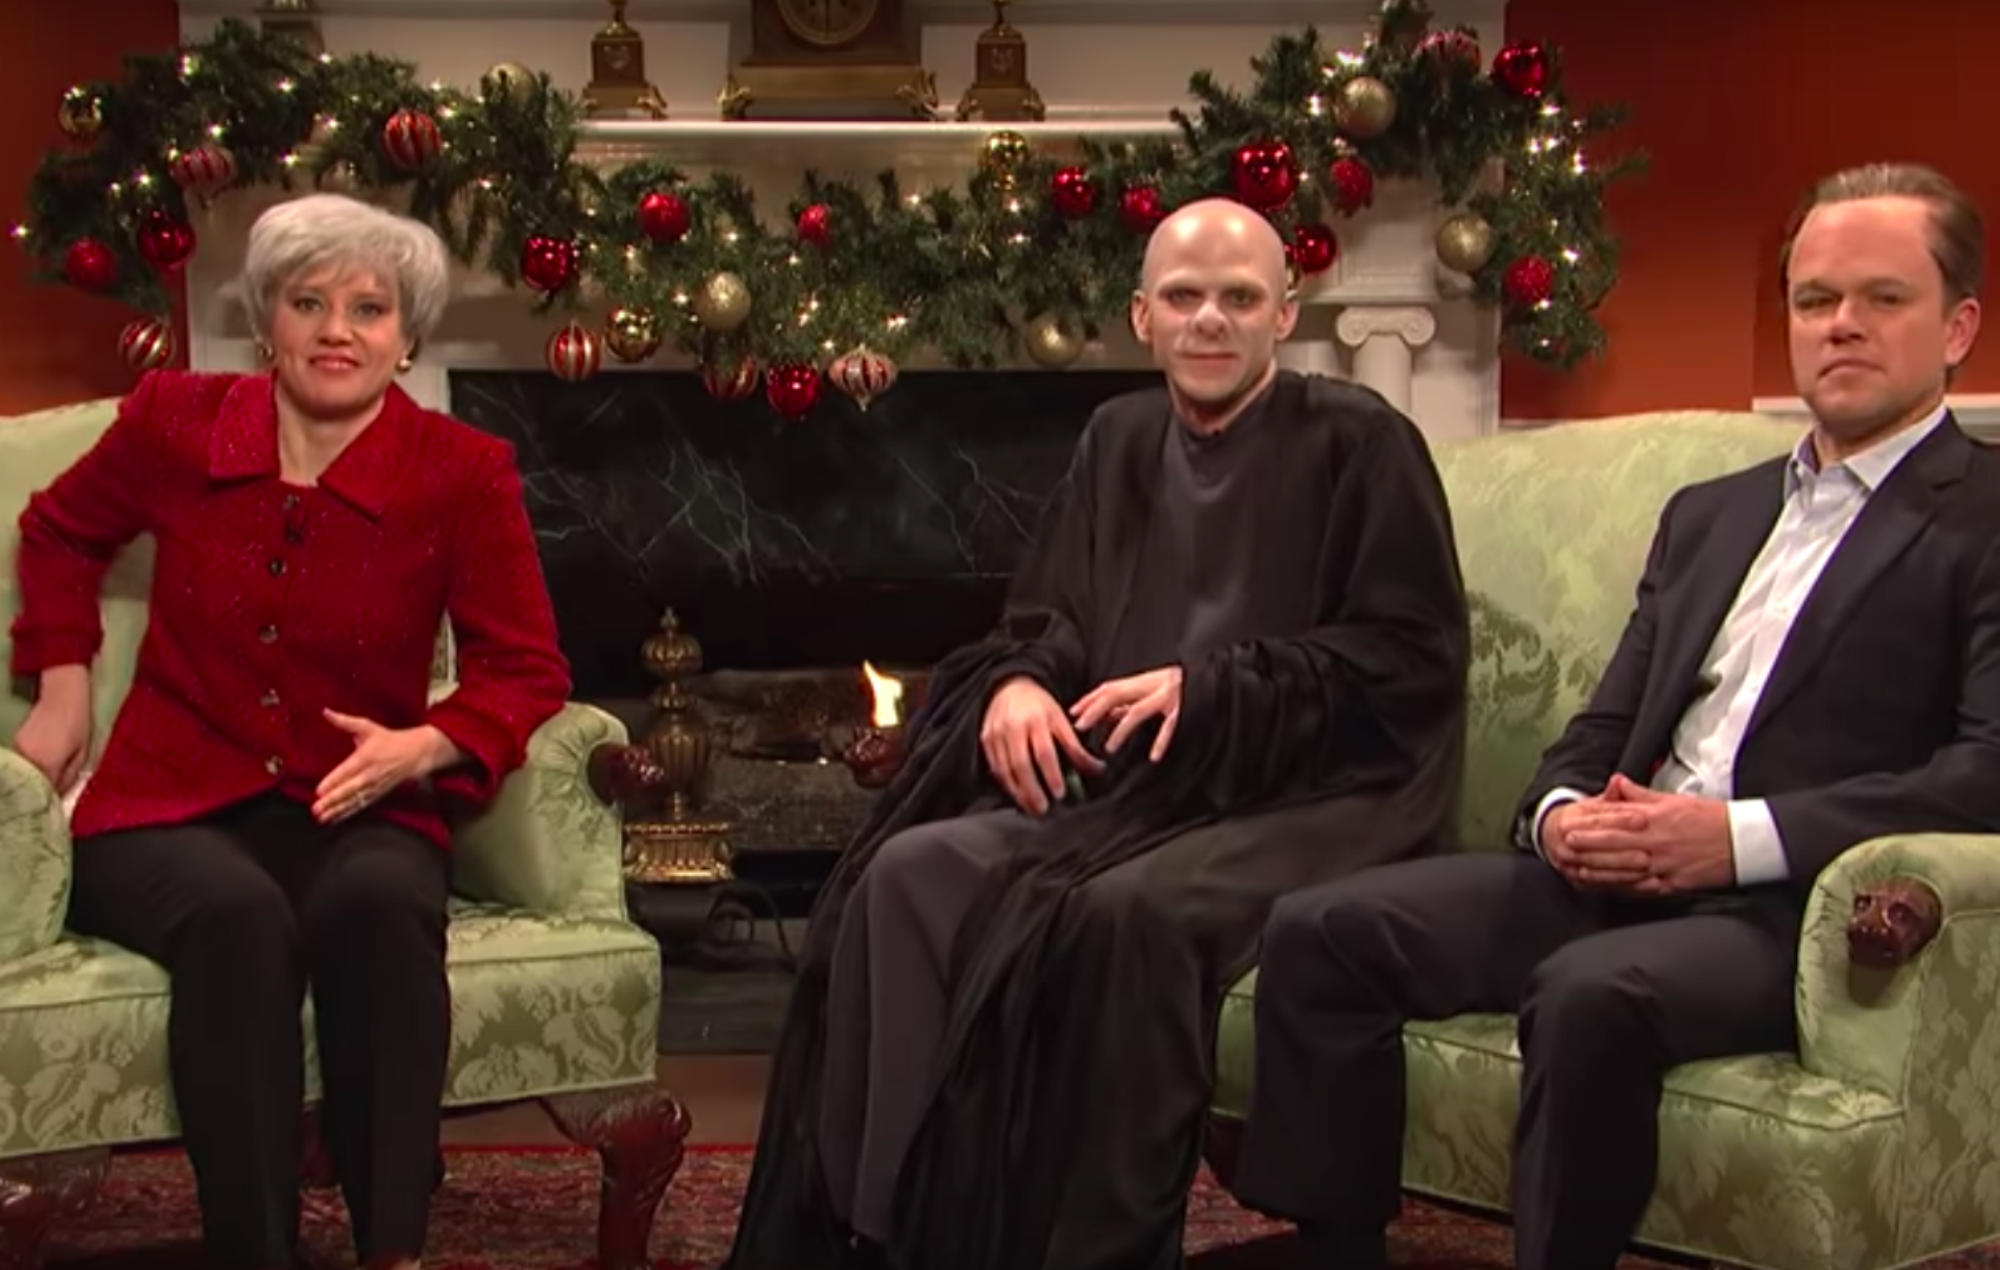 Watch Theresa May interview Lord Voldemort and David Cameron during this ridiculous 'SNL' sketch - NME Live